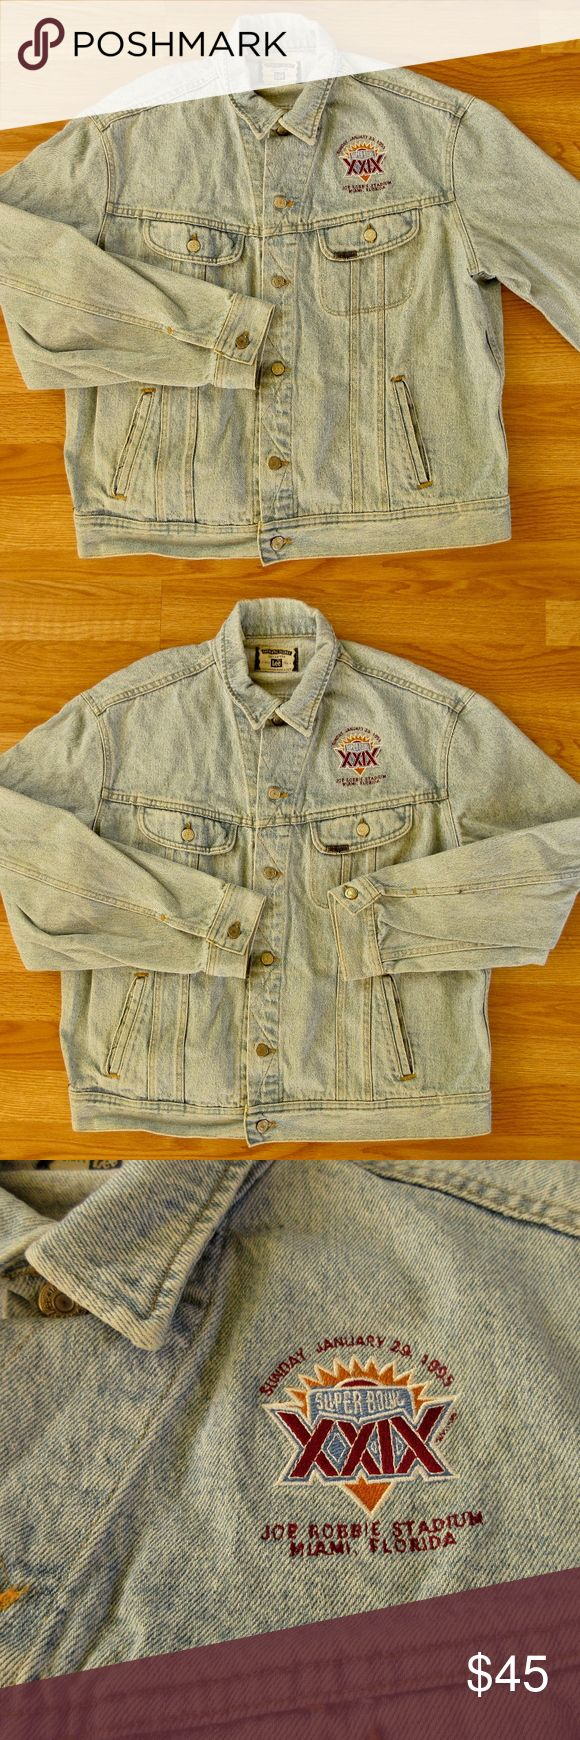 """Vintage 1995 Super Bowl XXIX Denim Jacket, Lee Super cool Super Bowl Souvenir from 1995 game, played in Miami, Florida at Joe Robbie Stadium.  Acid wash denim jacket by Lee.  100% Cotton.  Nice, thick, high quality denim.  Marked a men's size XL.  Chest, 54"""".  Length from back neck,, 28"""".  Sleeves, 26"""".  Shoulders 21"""".  Excellent condition with very little wear.  Please see last pic, as it shows a small hole and two small spots center back.  Great gift for the NFL Football fan in your life…"""